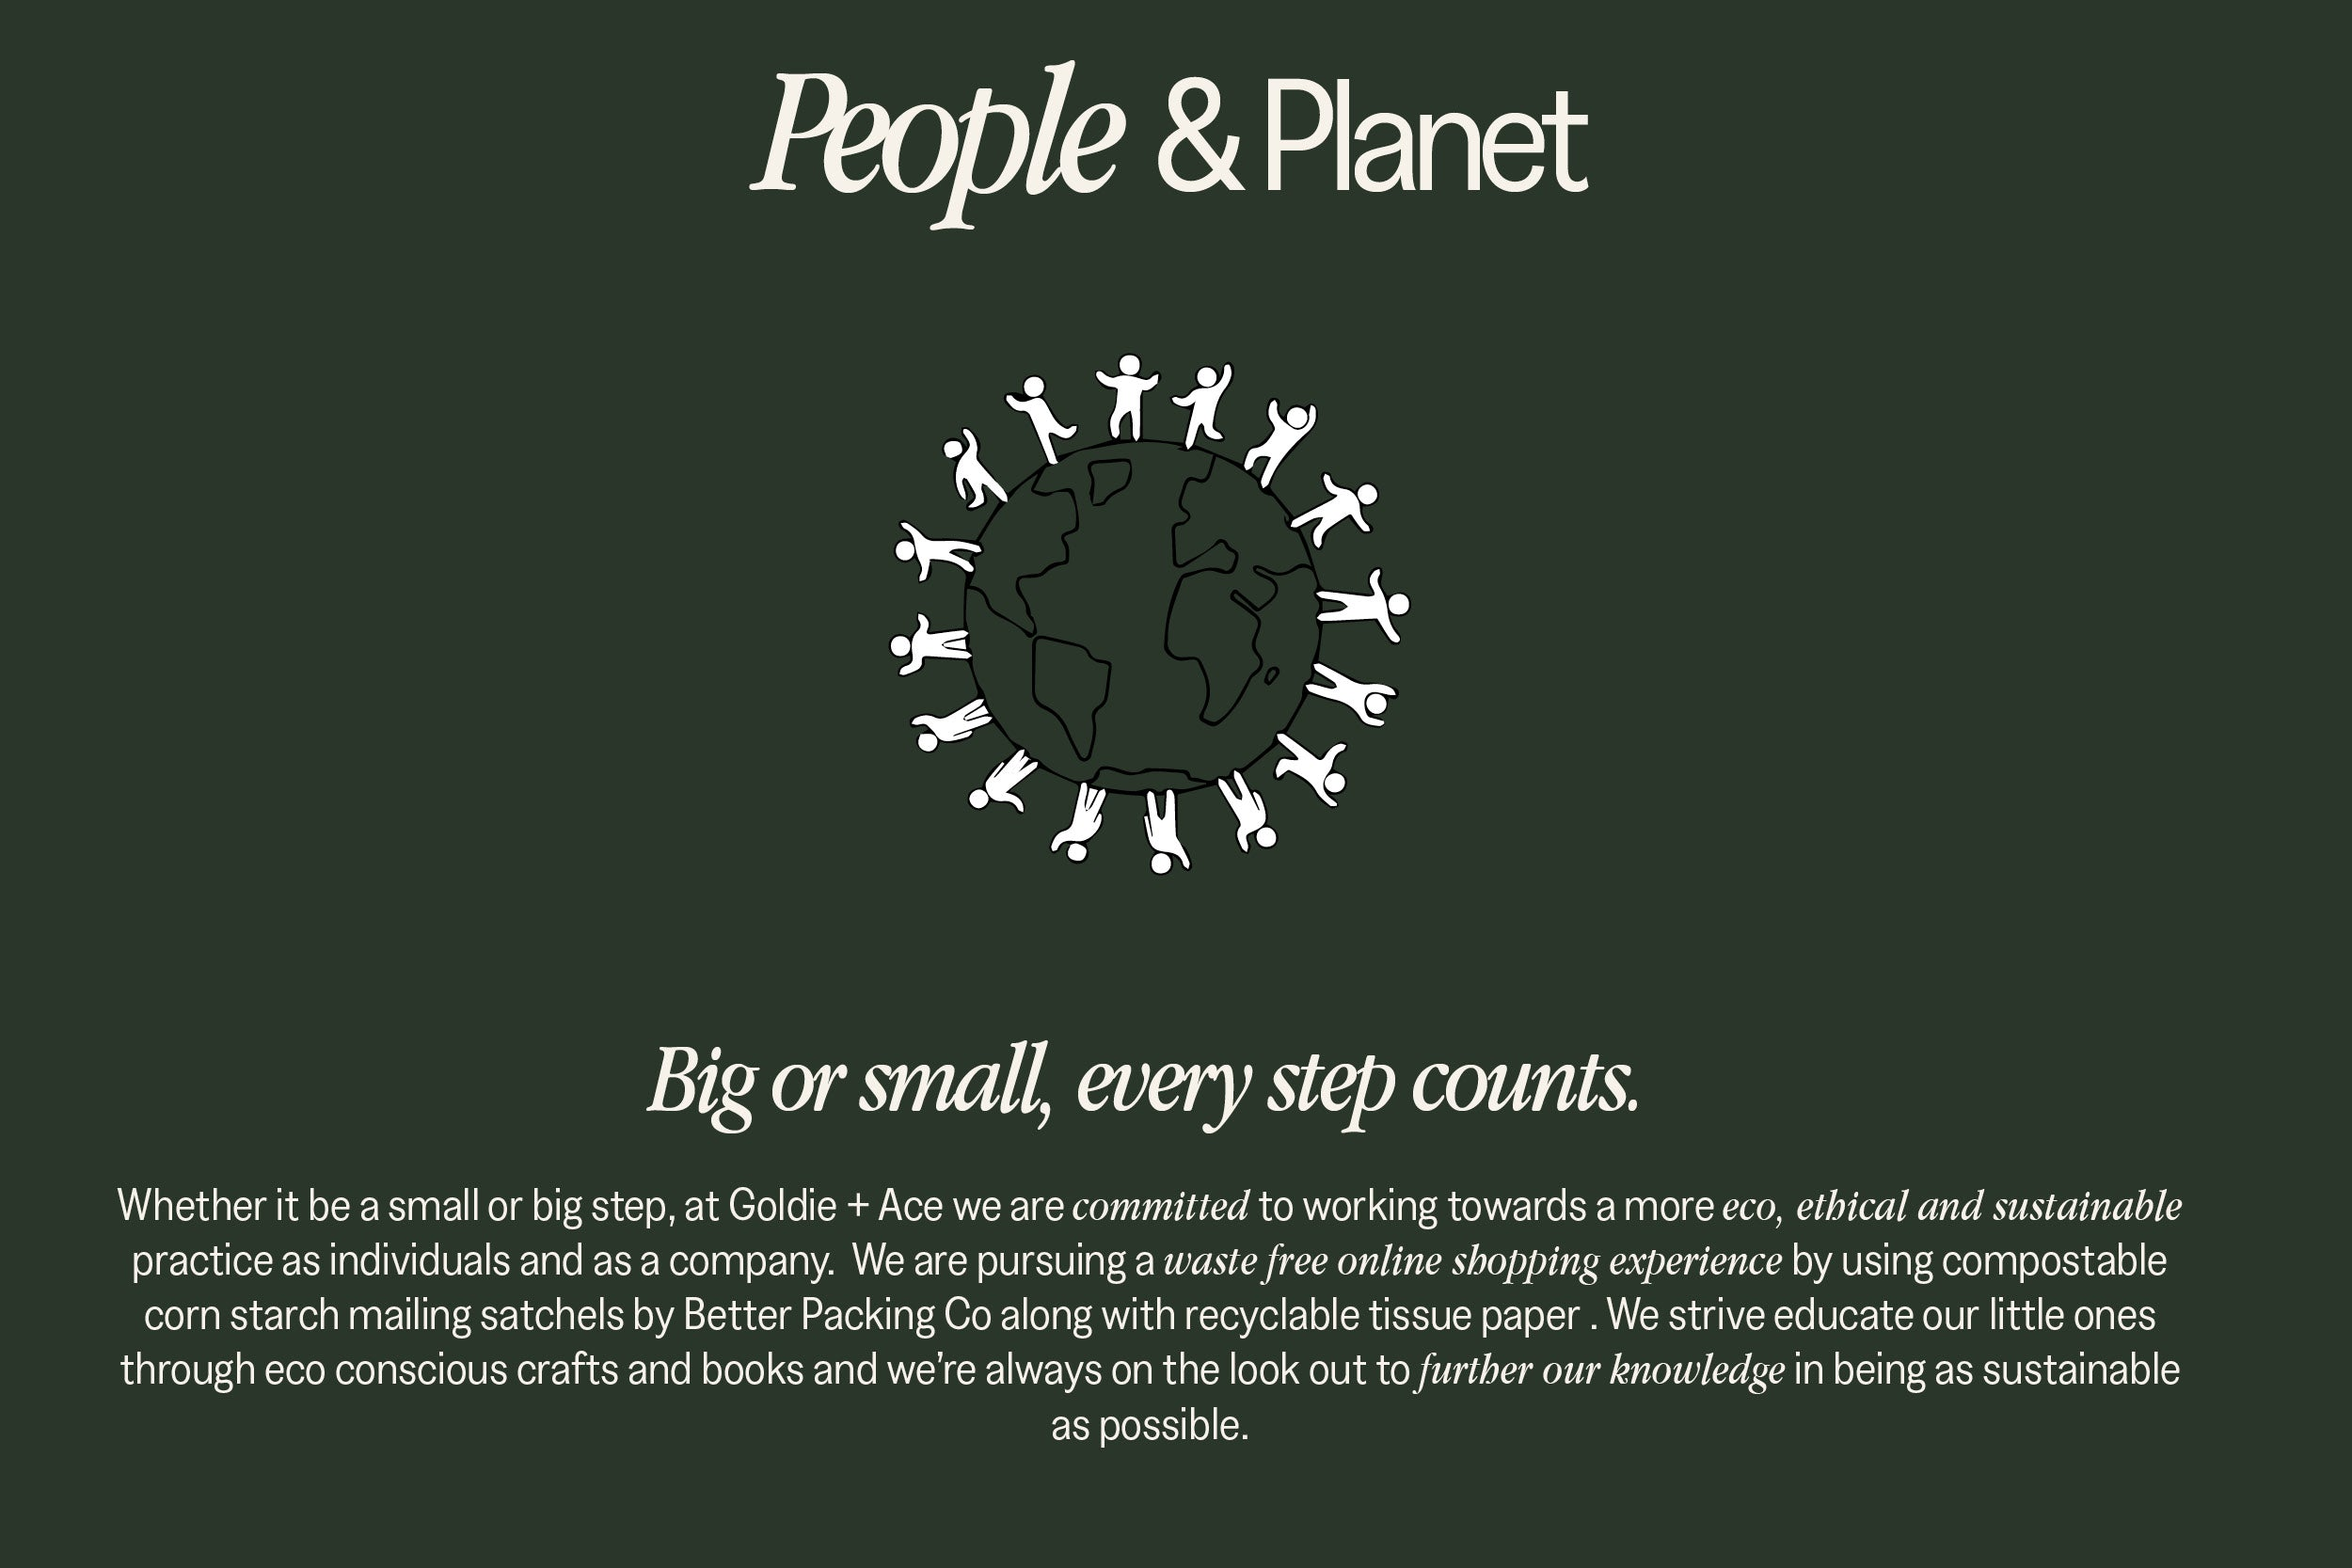 At Goldie + Ace we are committed to working towards a more eco, ethical and sustainable practice as individuals and as a company.